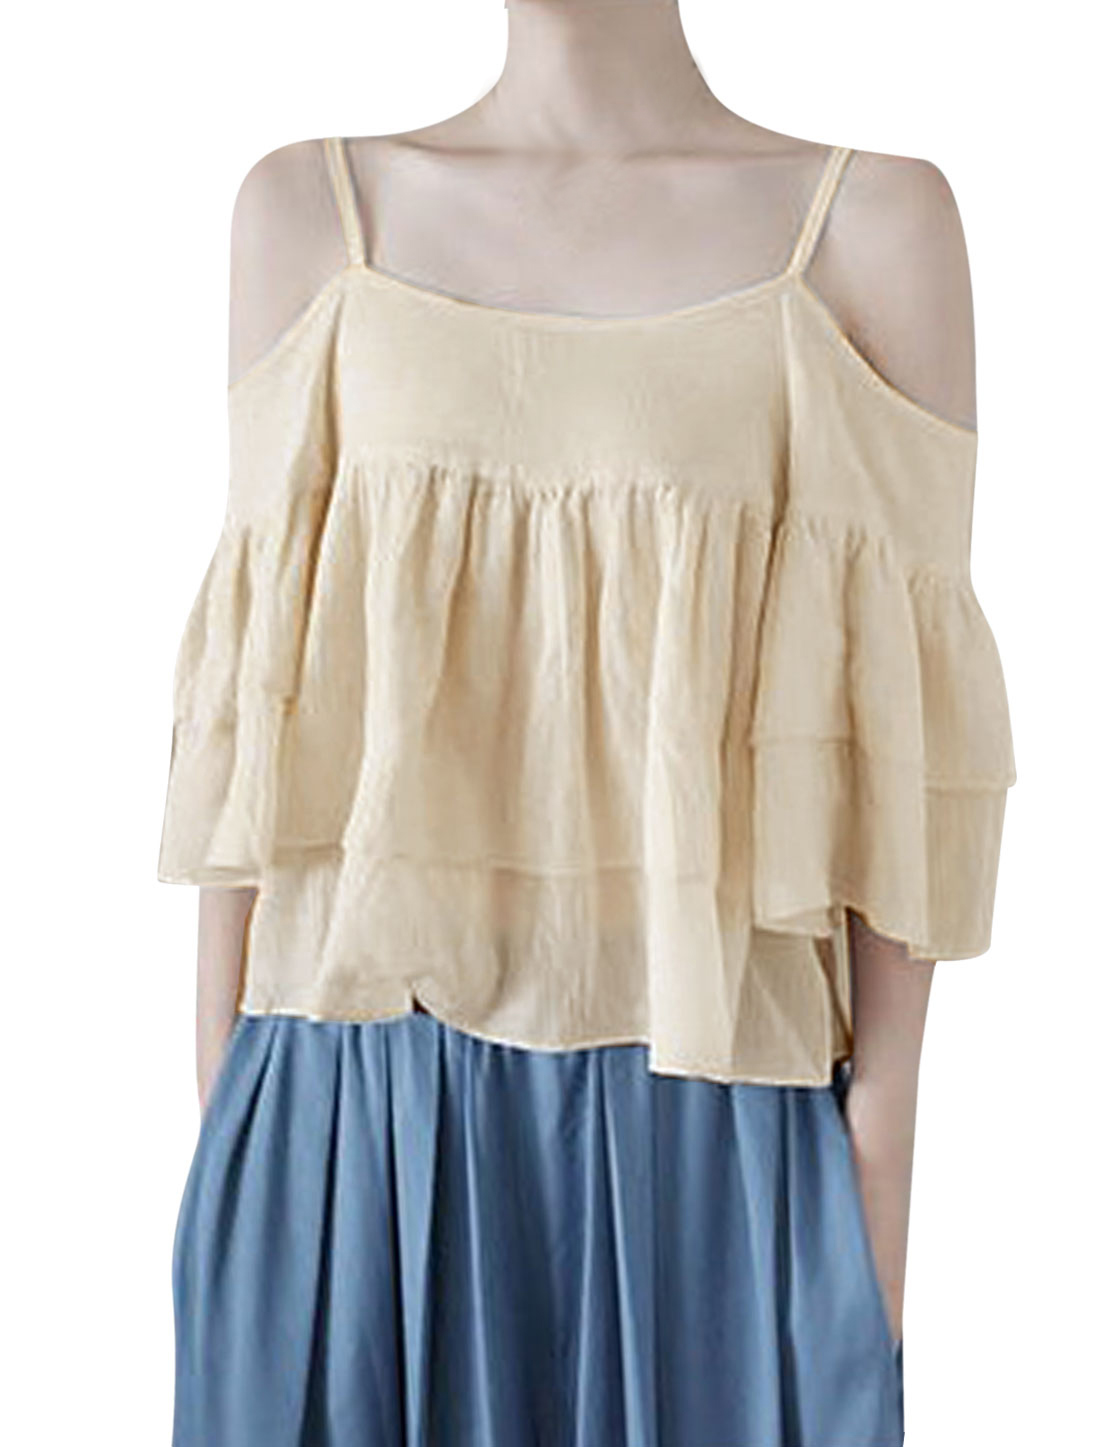 Lady Spaghetti Straps Trumpet Sleeve Ruched Detail Tiered Blouse Apricot XS